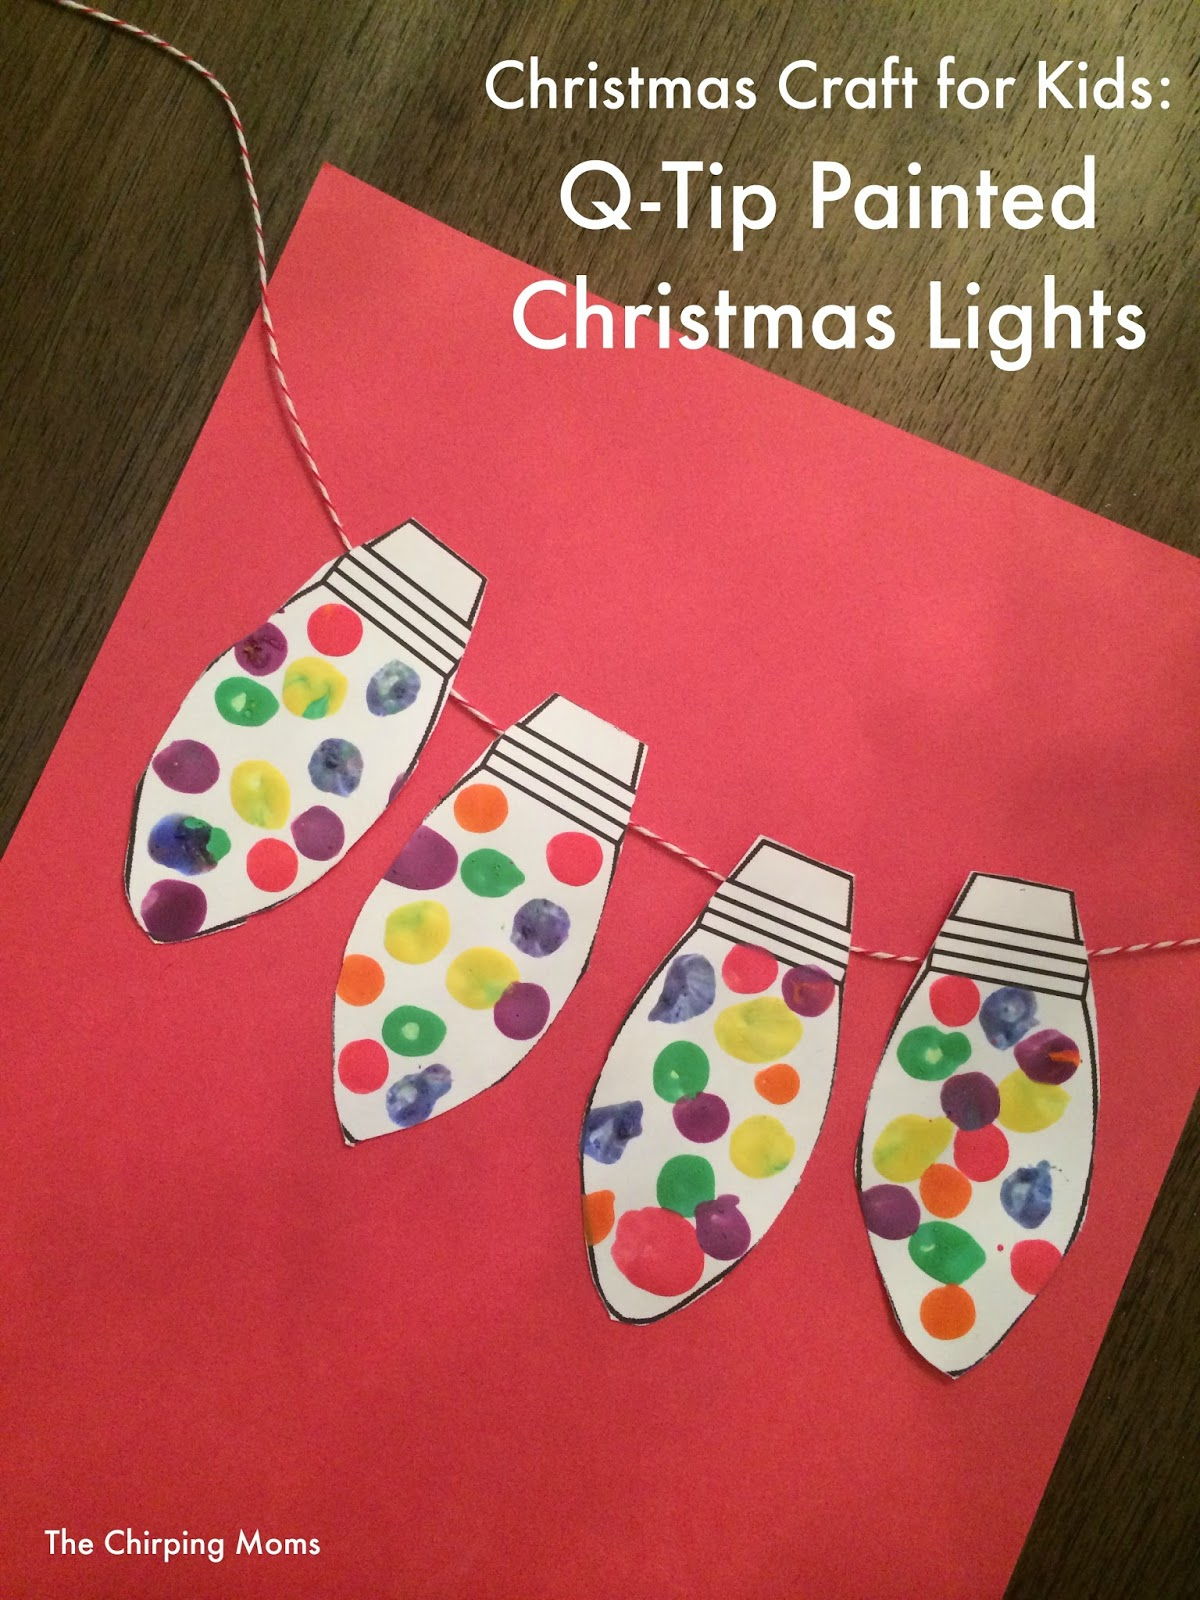 Preschool Xmas Calendar Ideas : Christmas crafts for kids to make this week the